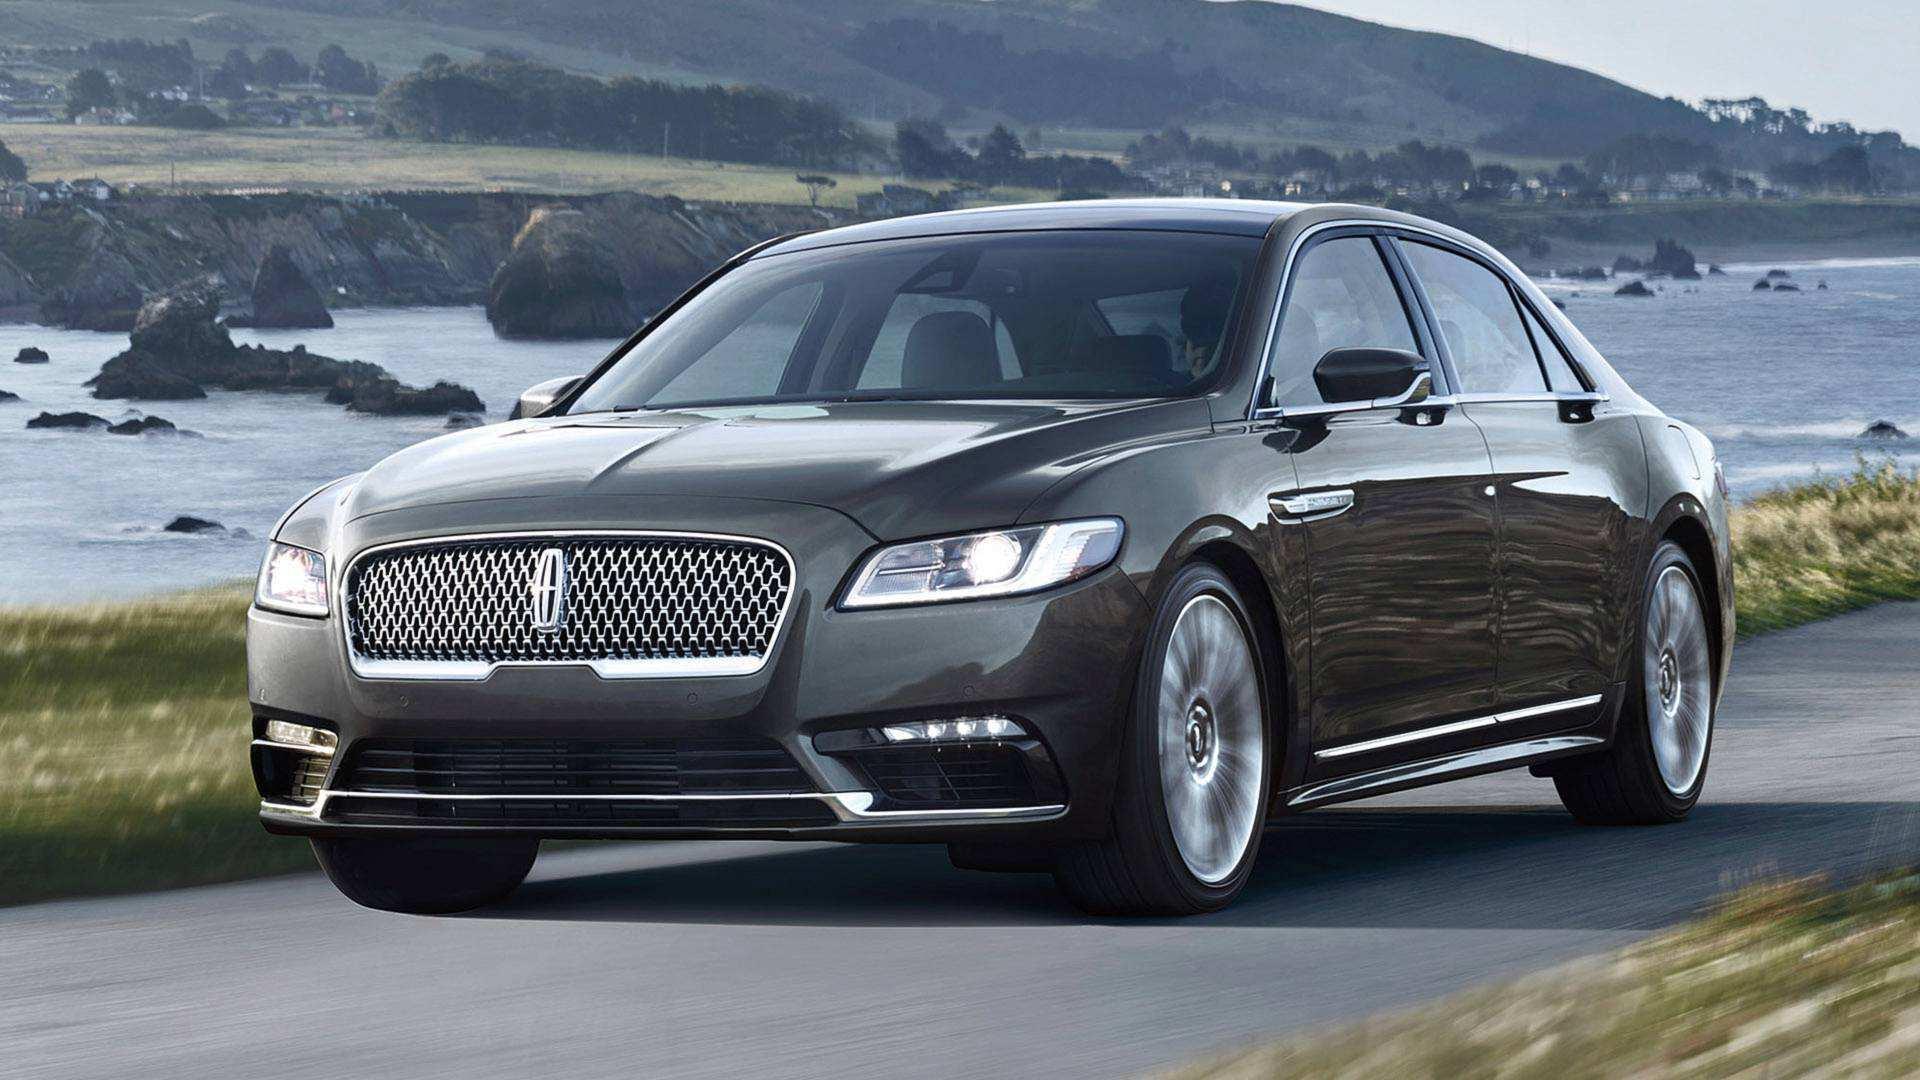 84 Best 2020 The Lincoln Continental Wallpaper